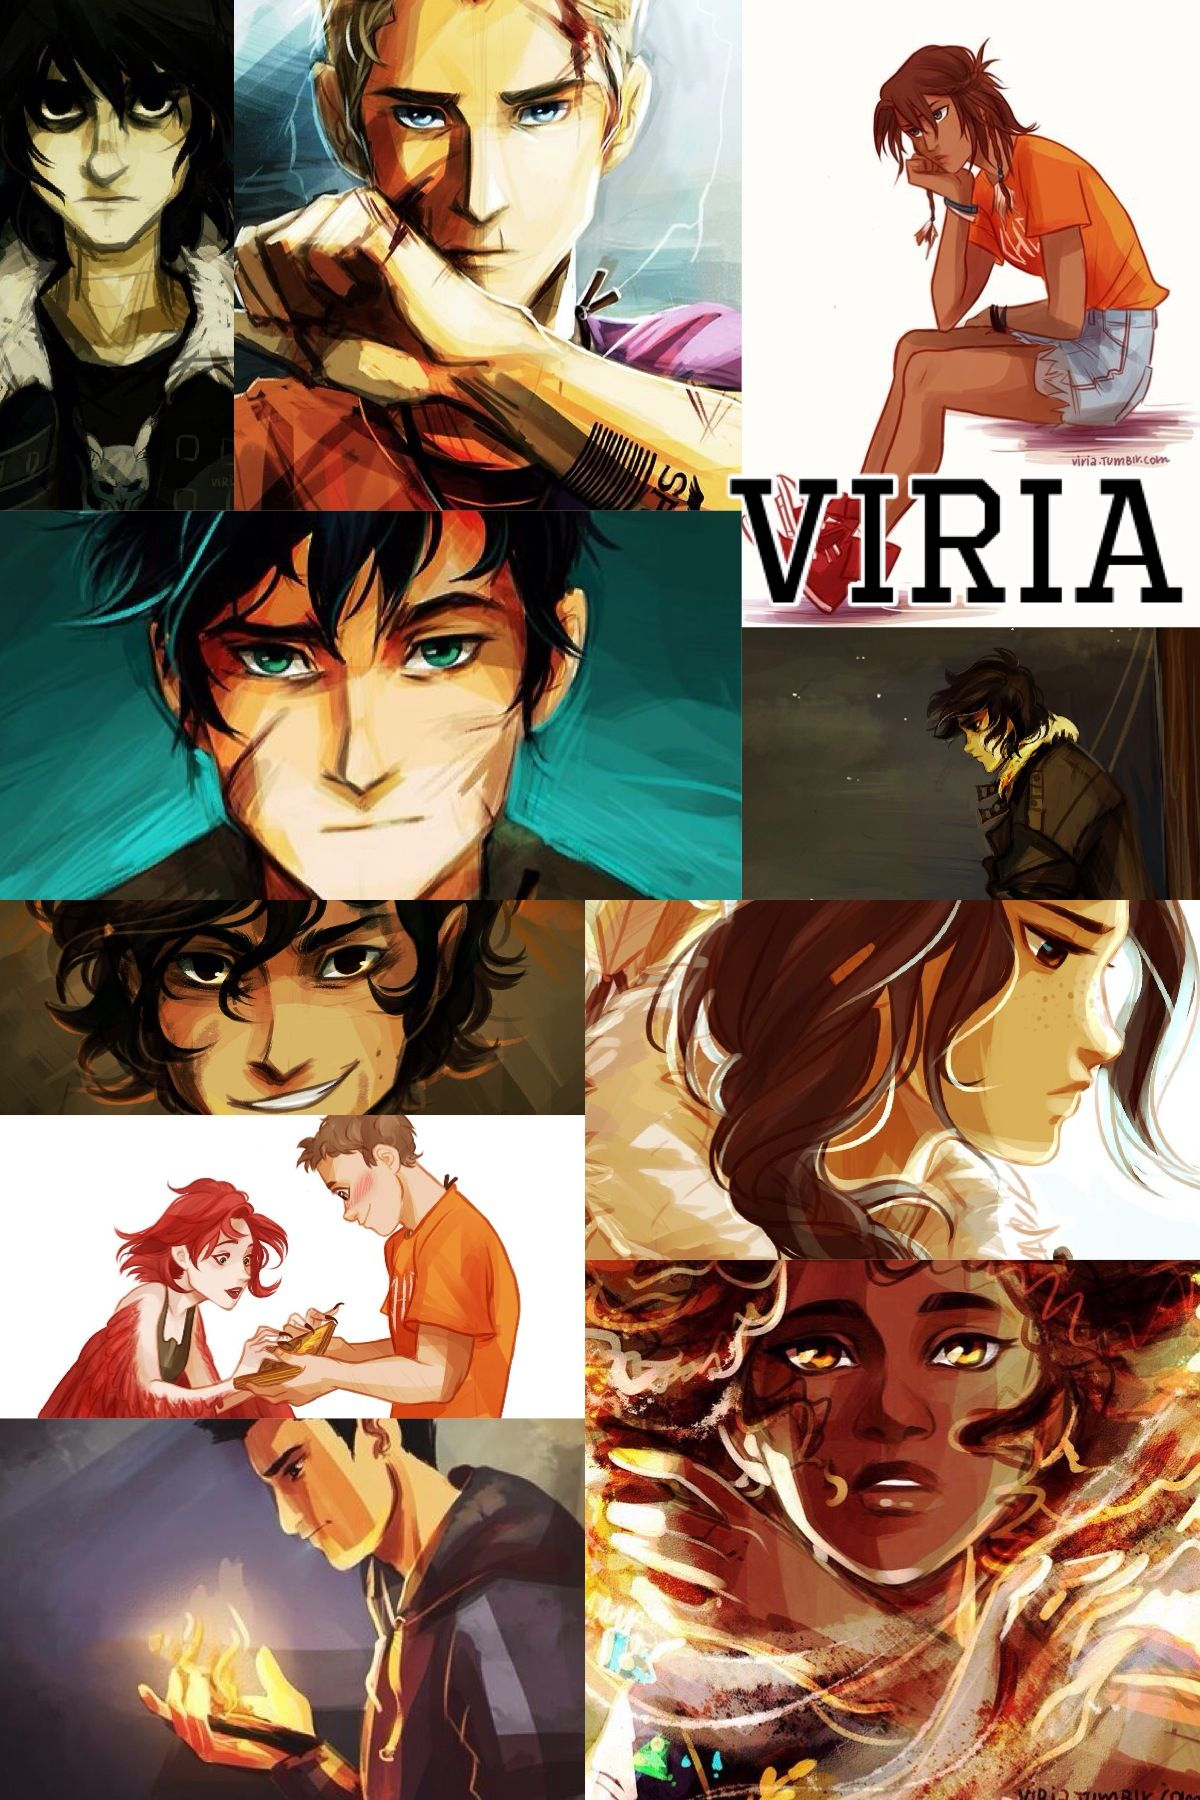 THANK YOU VIRIA FOR YOUR AMAZING ART! But where's Annabeth ...